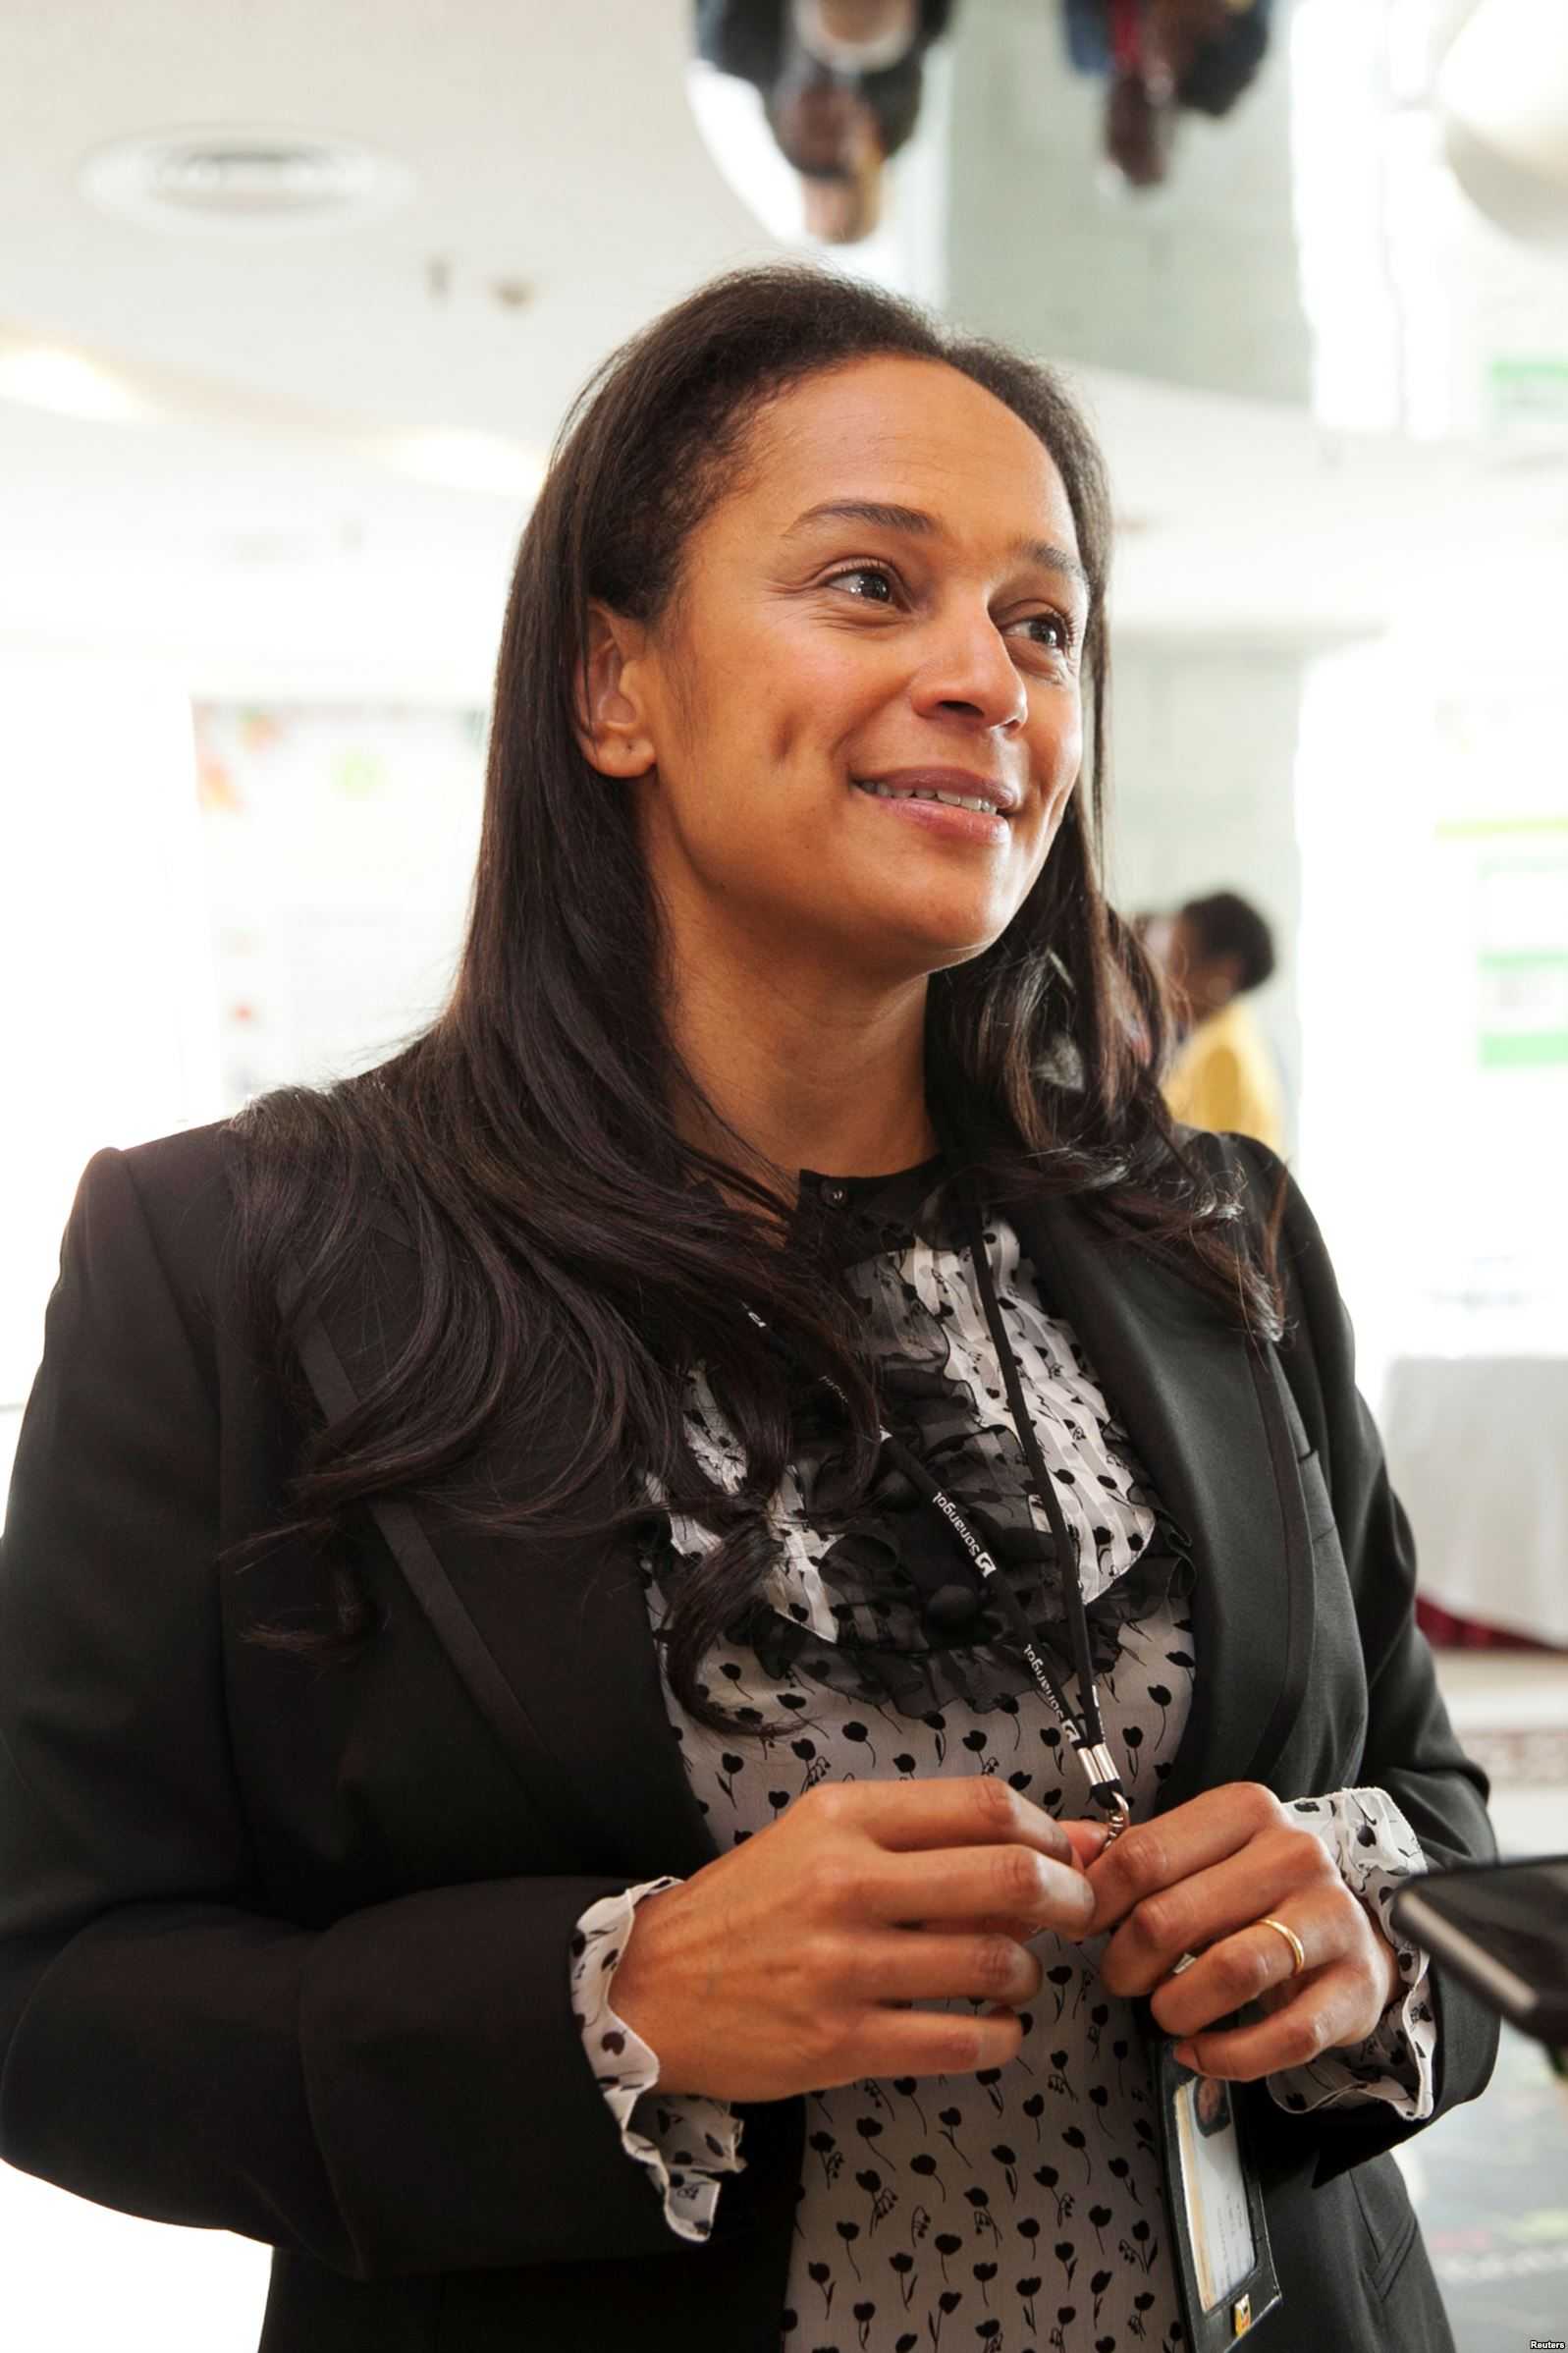 Isabel dos Santos, then-head of state energy giant Sonangol, speaks during an interview in Luanda, Angola, June 9, 2016.